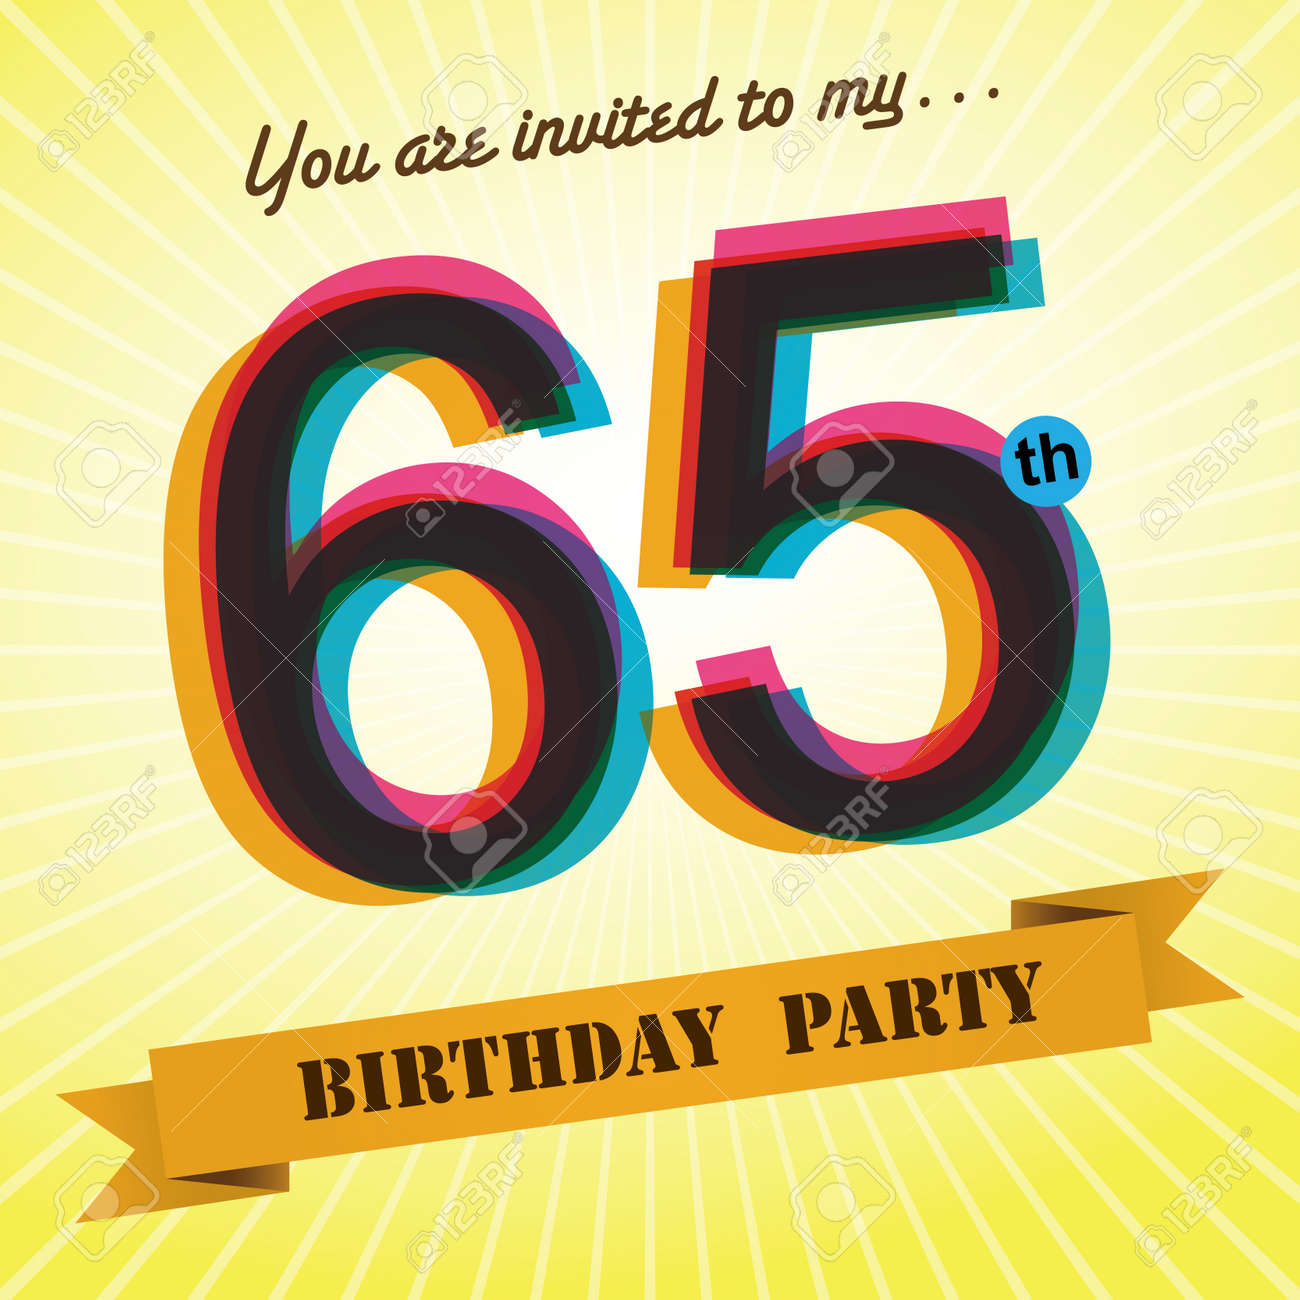 65th Birthday Party Invite Template Design Retro Style